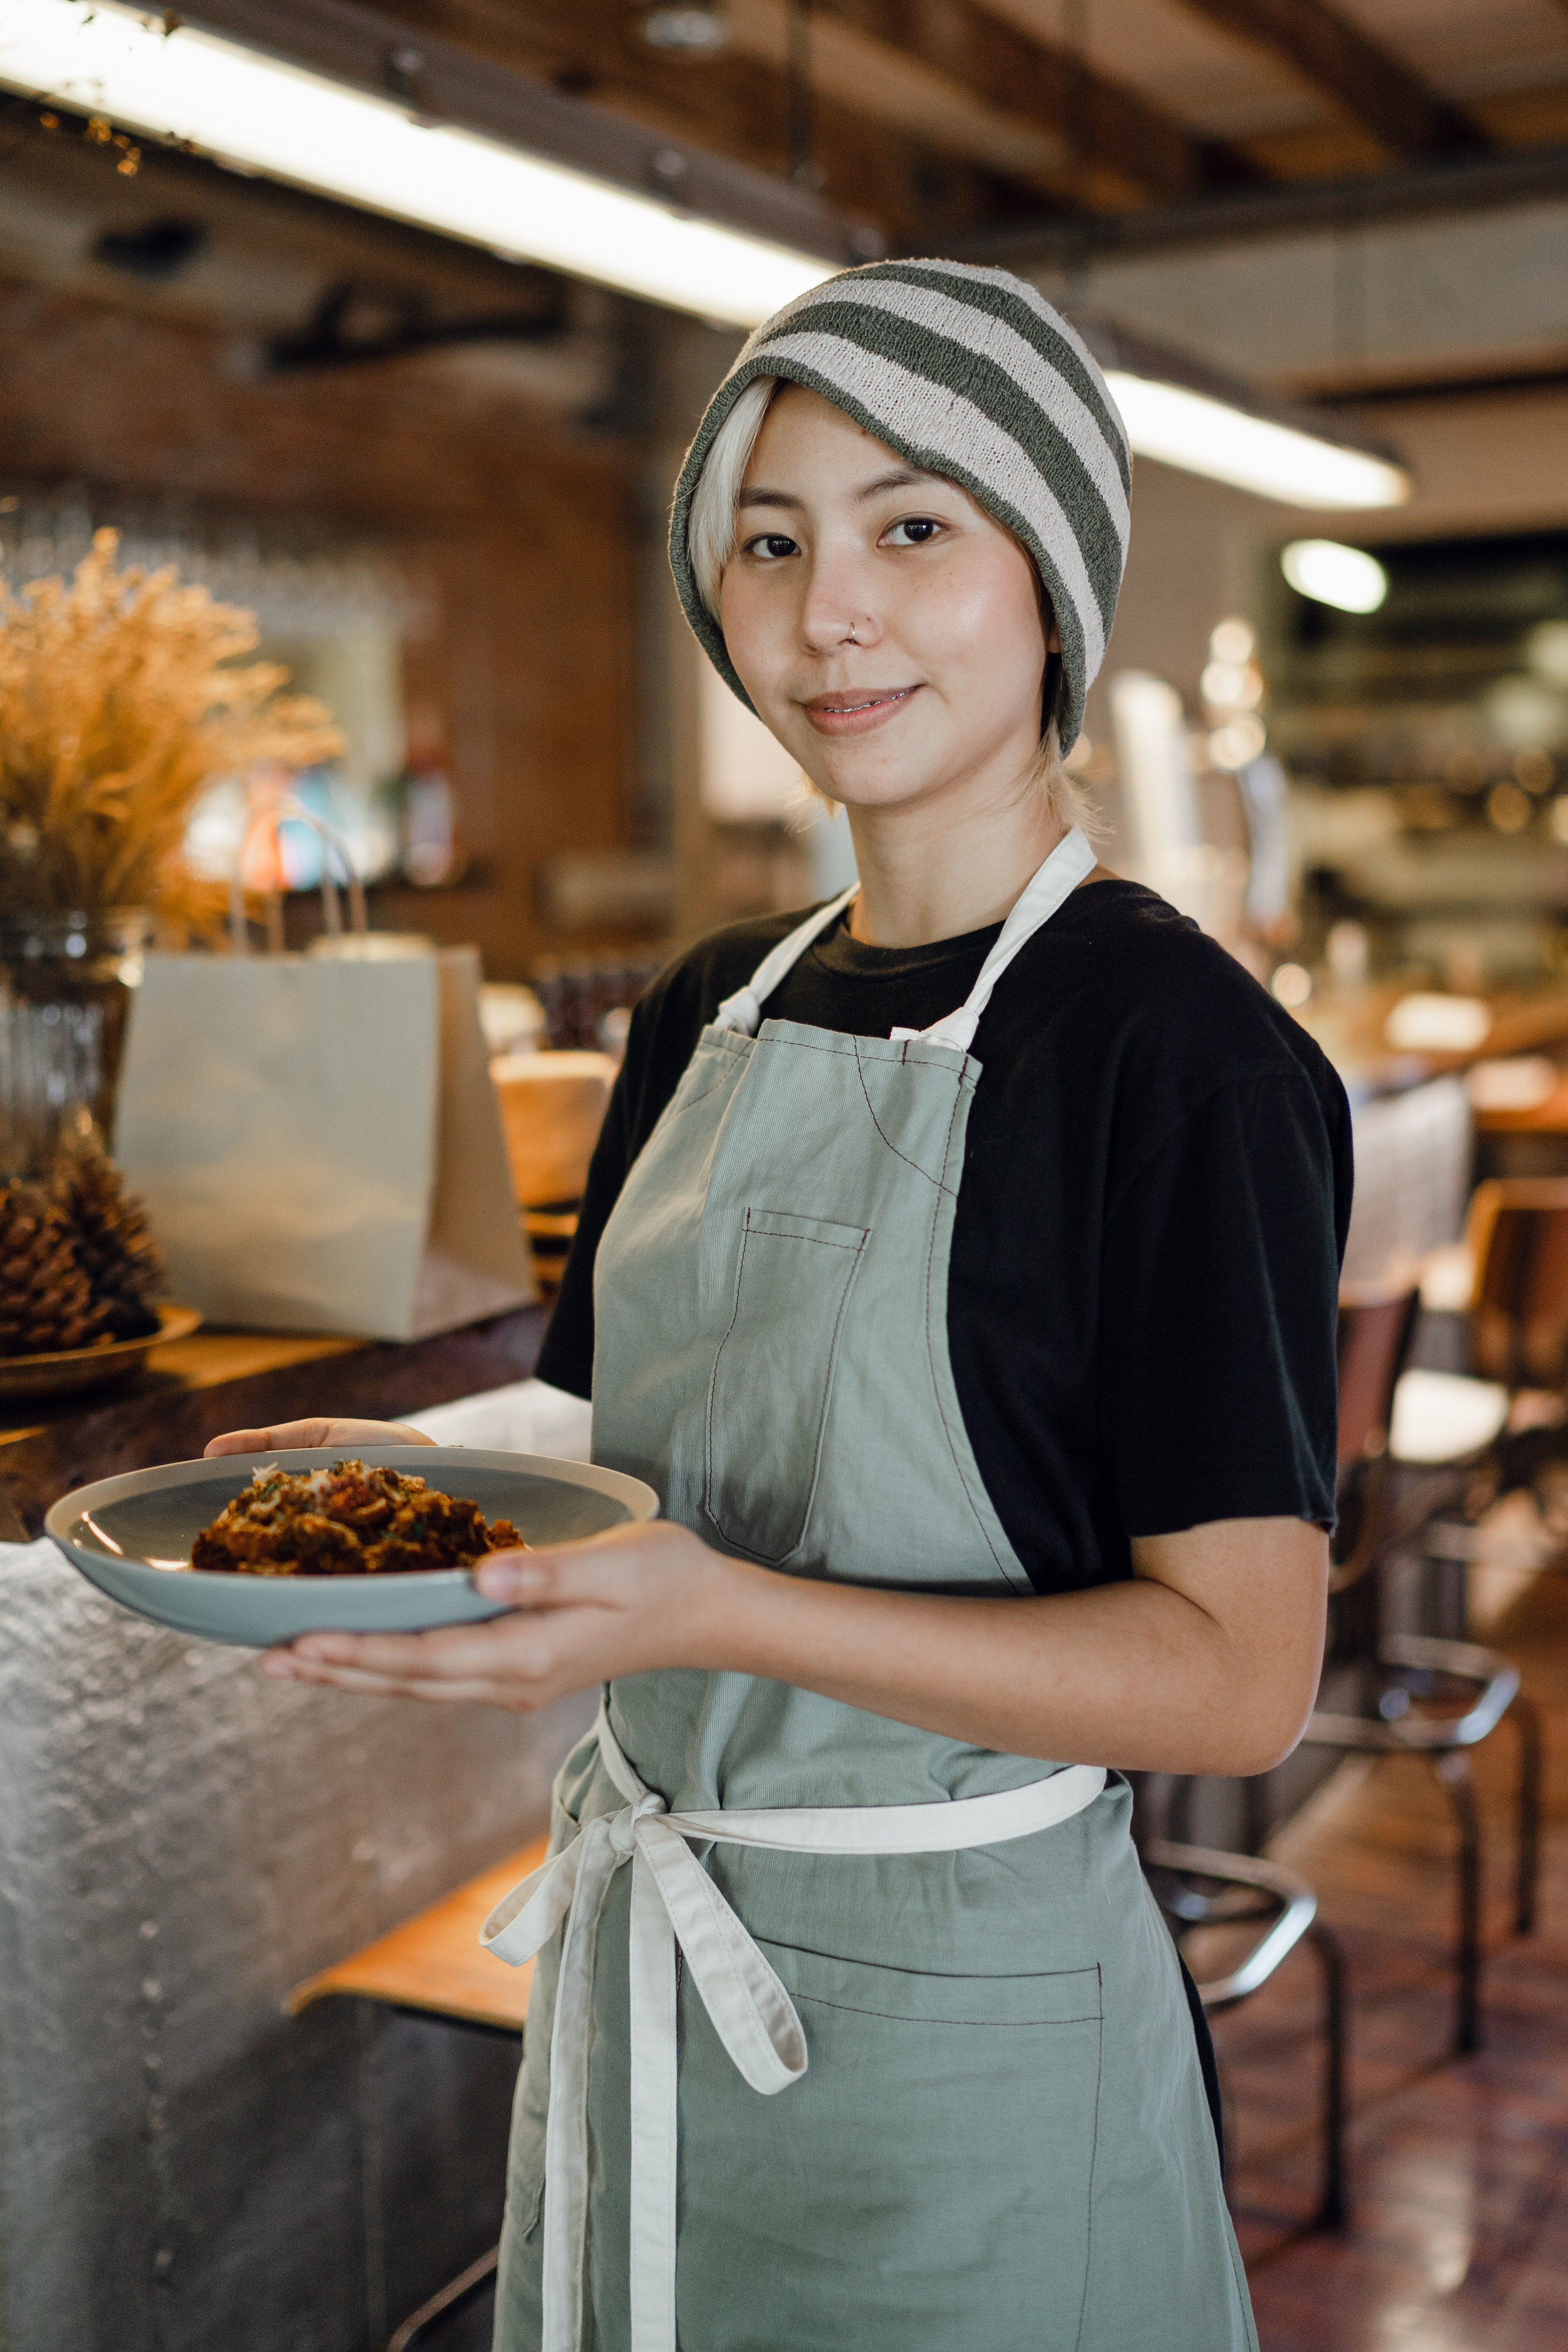 A woman carrying a plate of food in a restaurant.   Photo: Pexels/Ketut Subiyanto